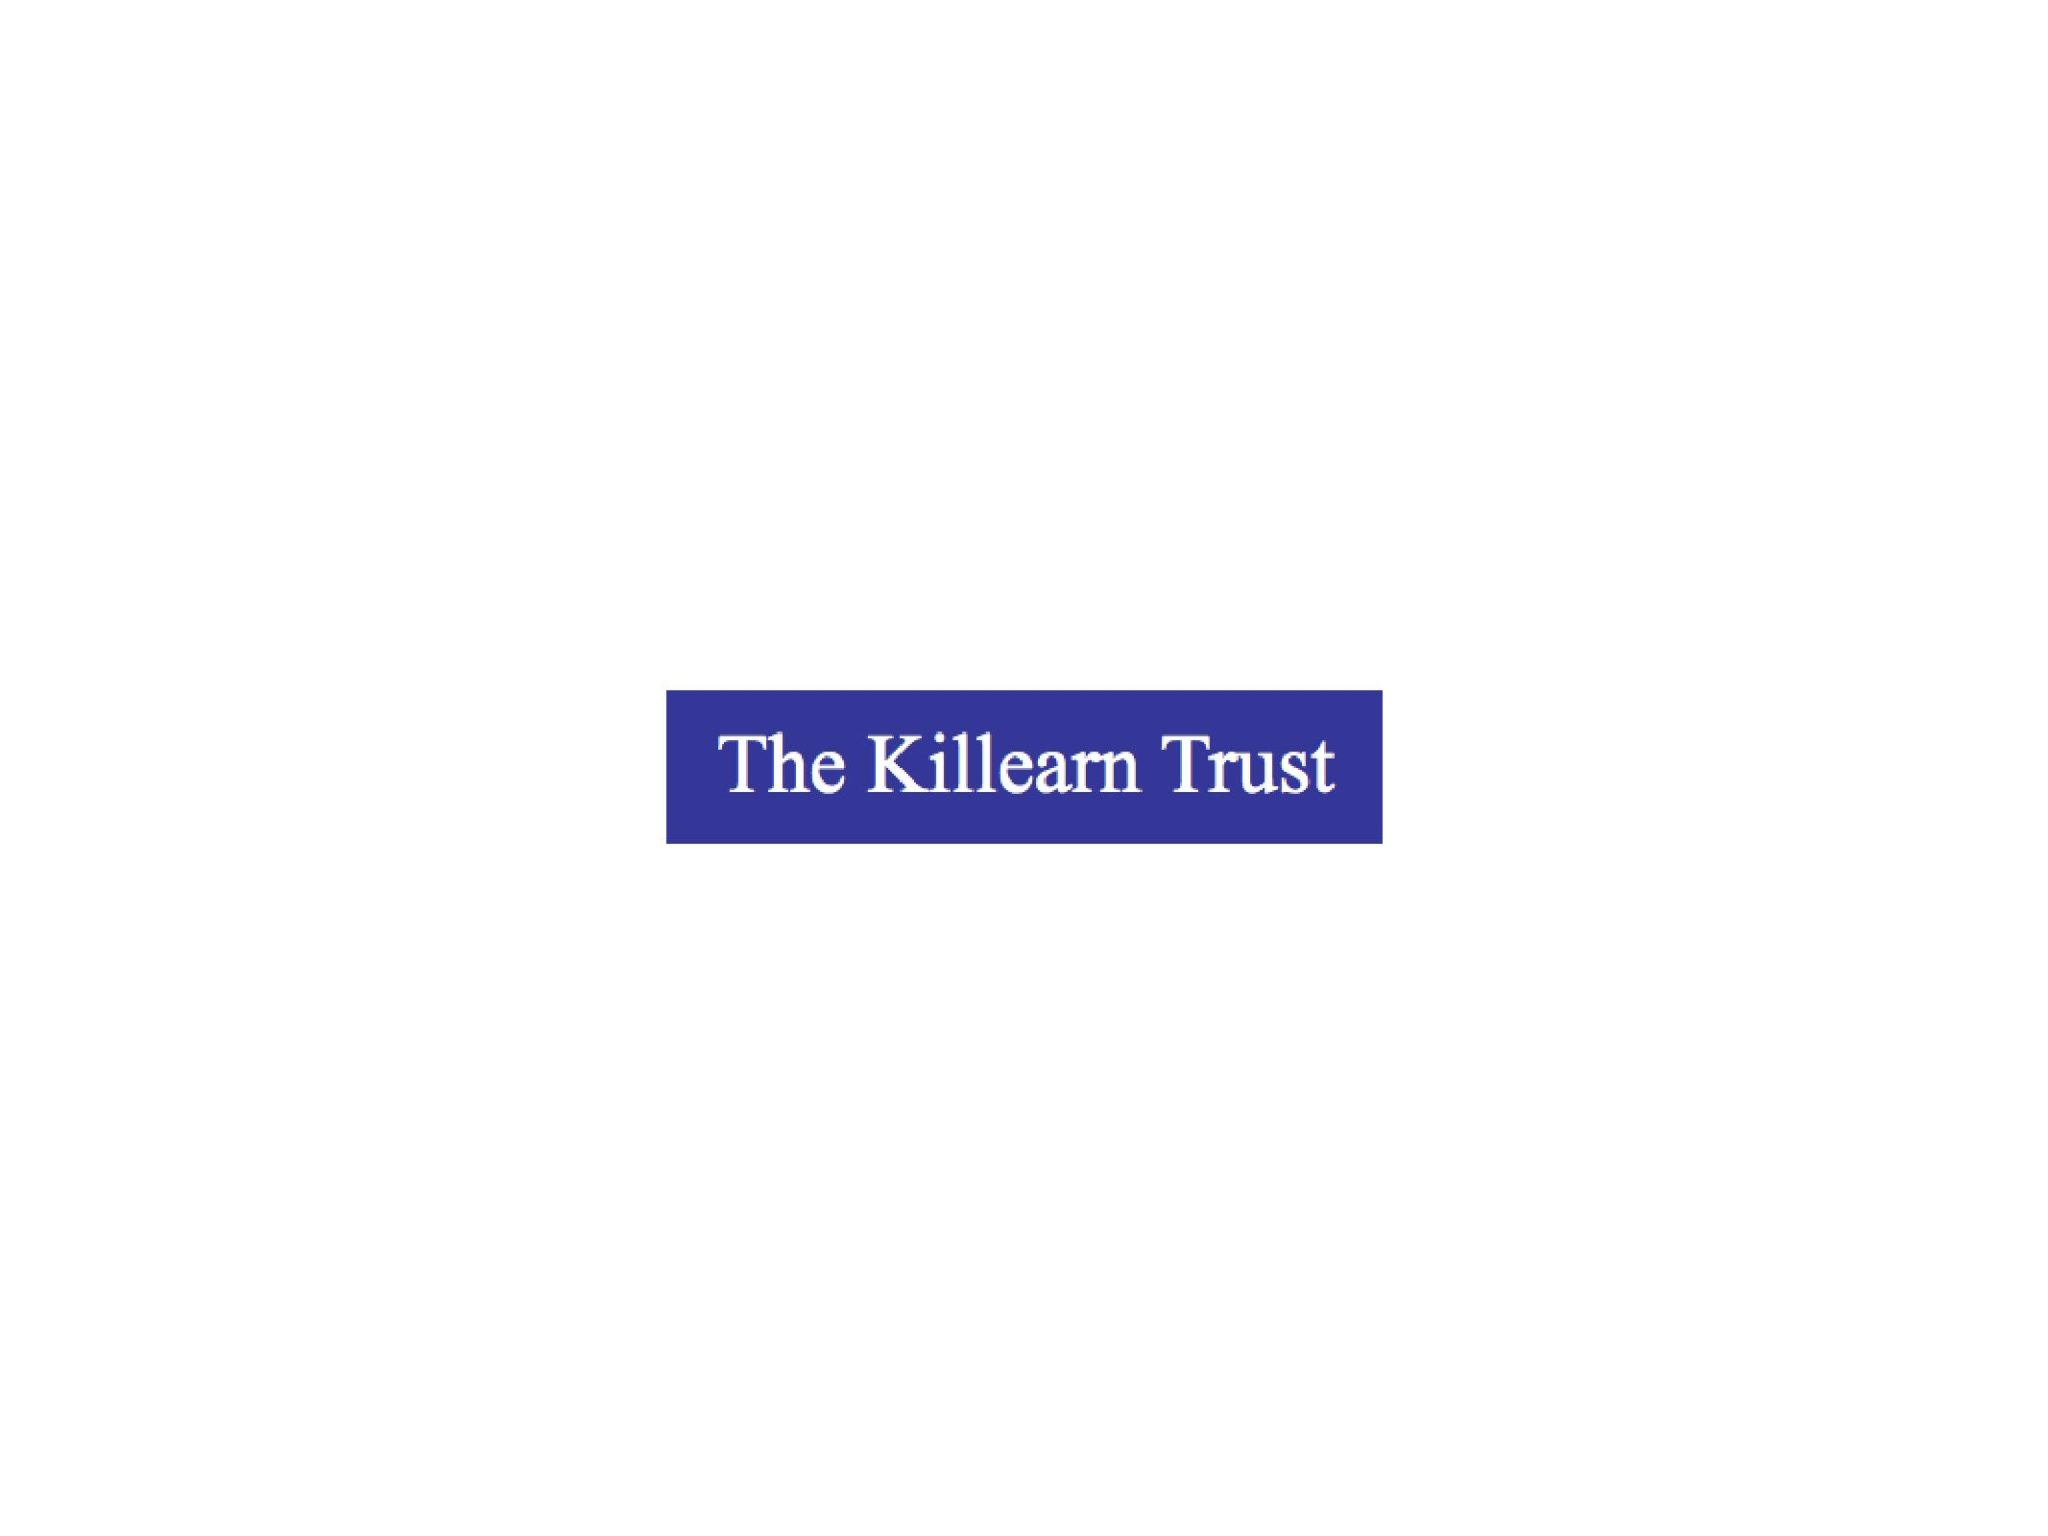 The Killearn Trust-page-001